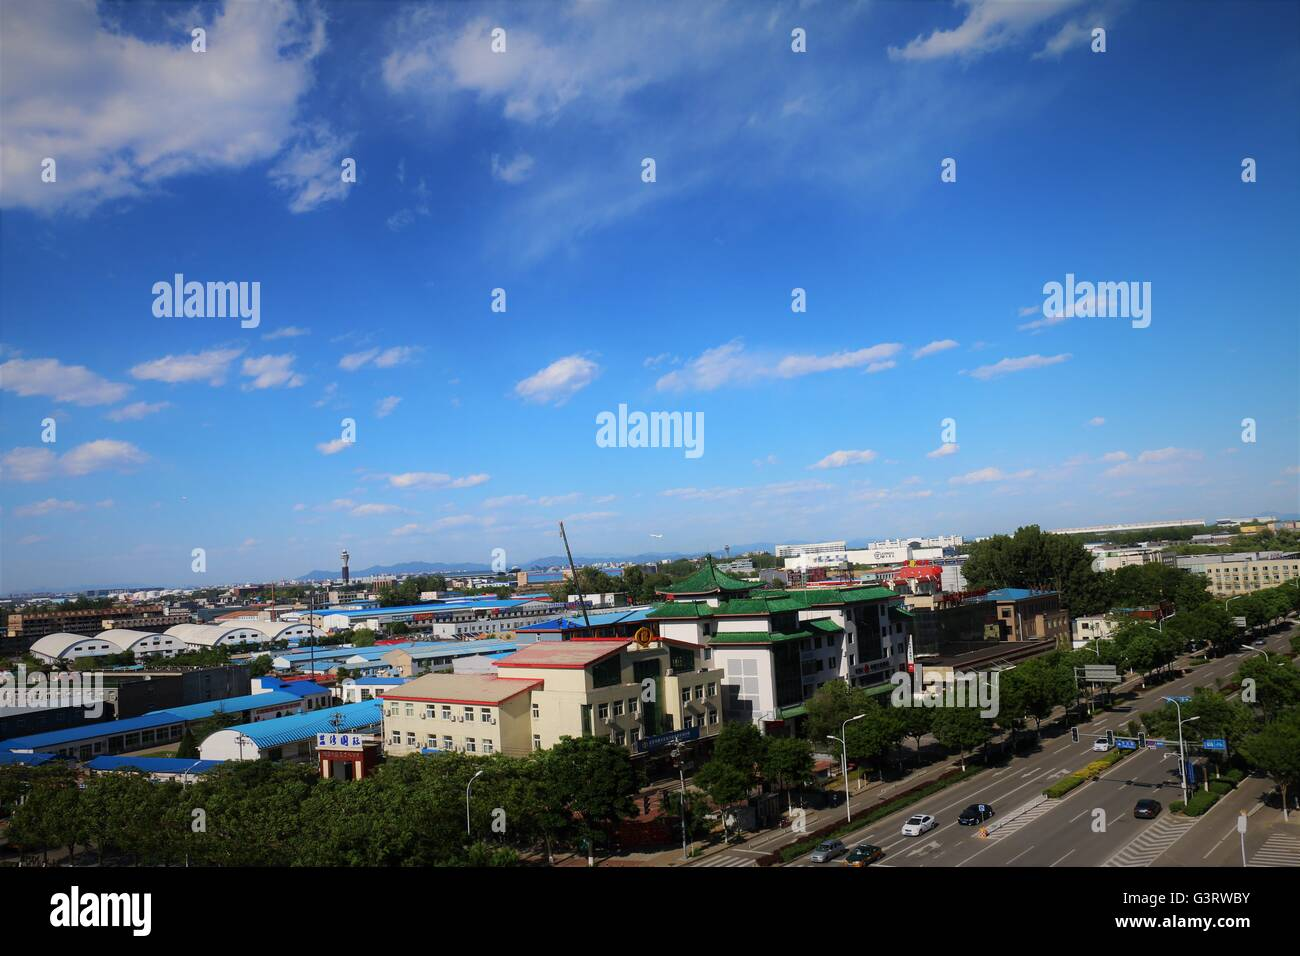 Urbanization. An urban scene with beautiful blue sky Stock Photo